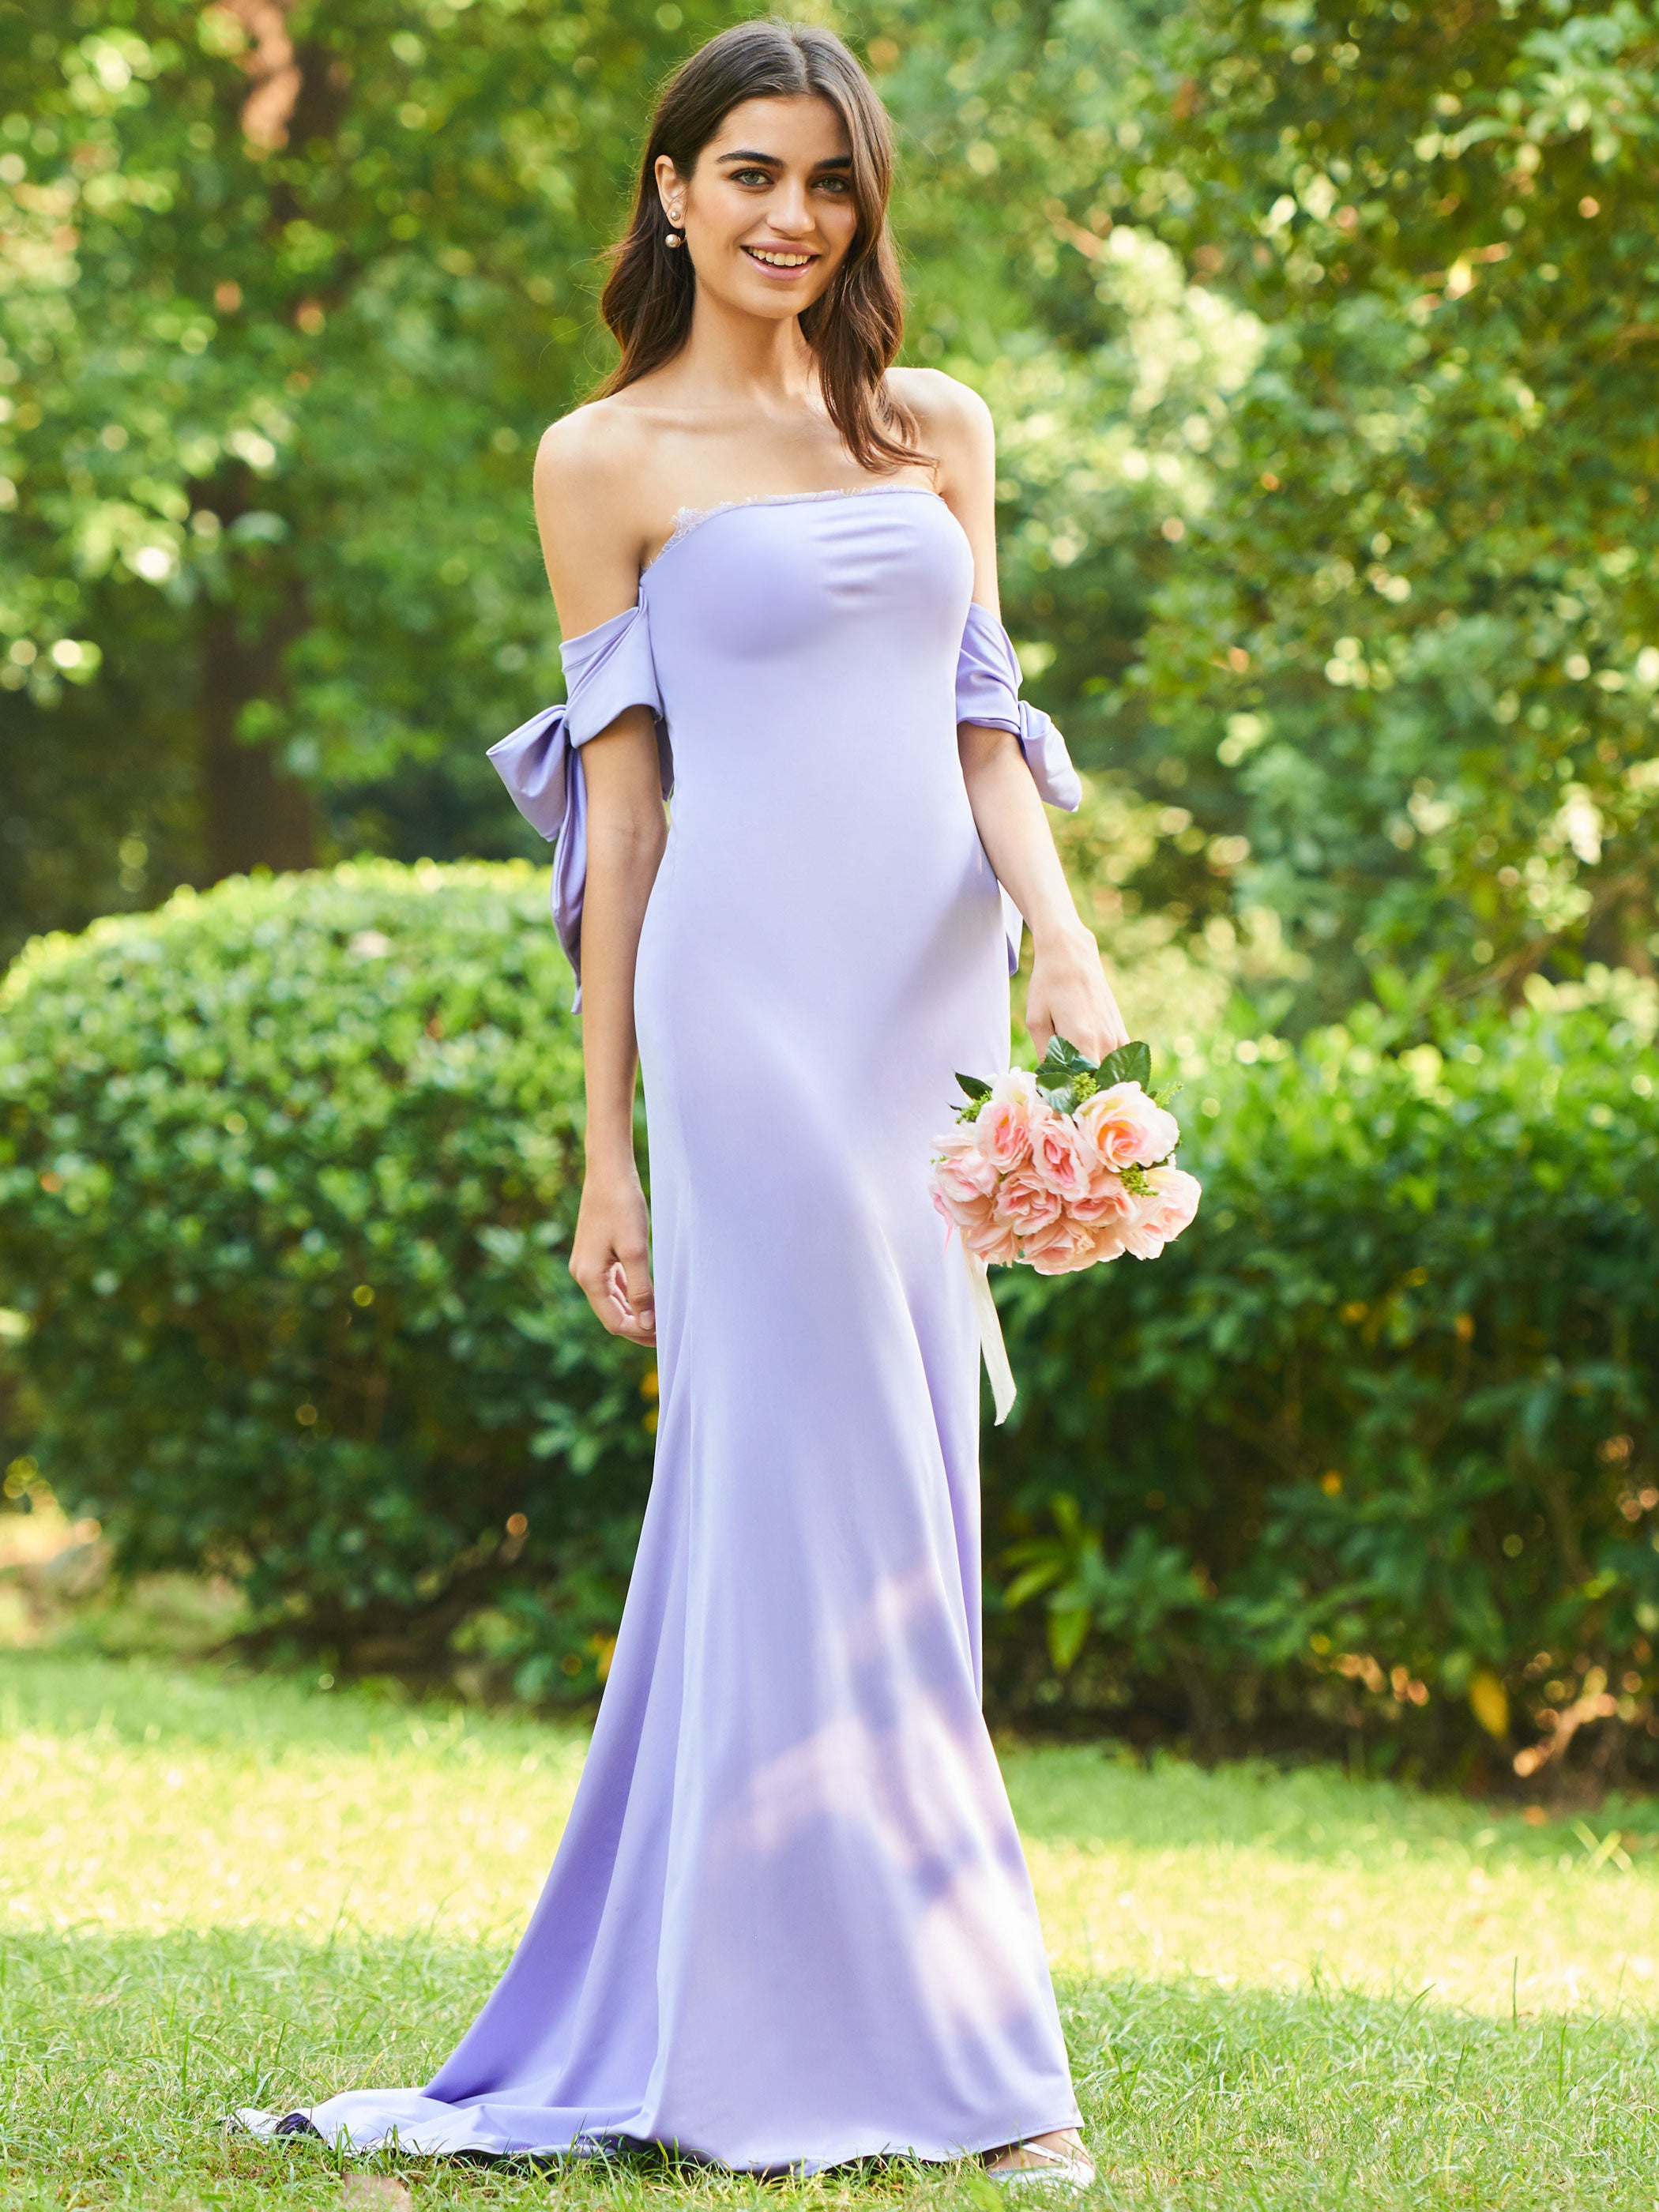 db19cf8bdb8 Lavender Strapless Off Shoulder Backless Bridesmaid Dresses With Lace